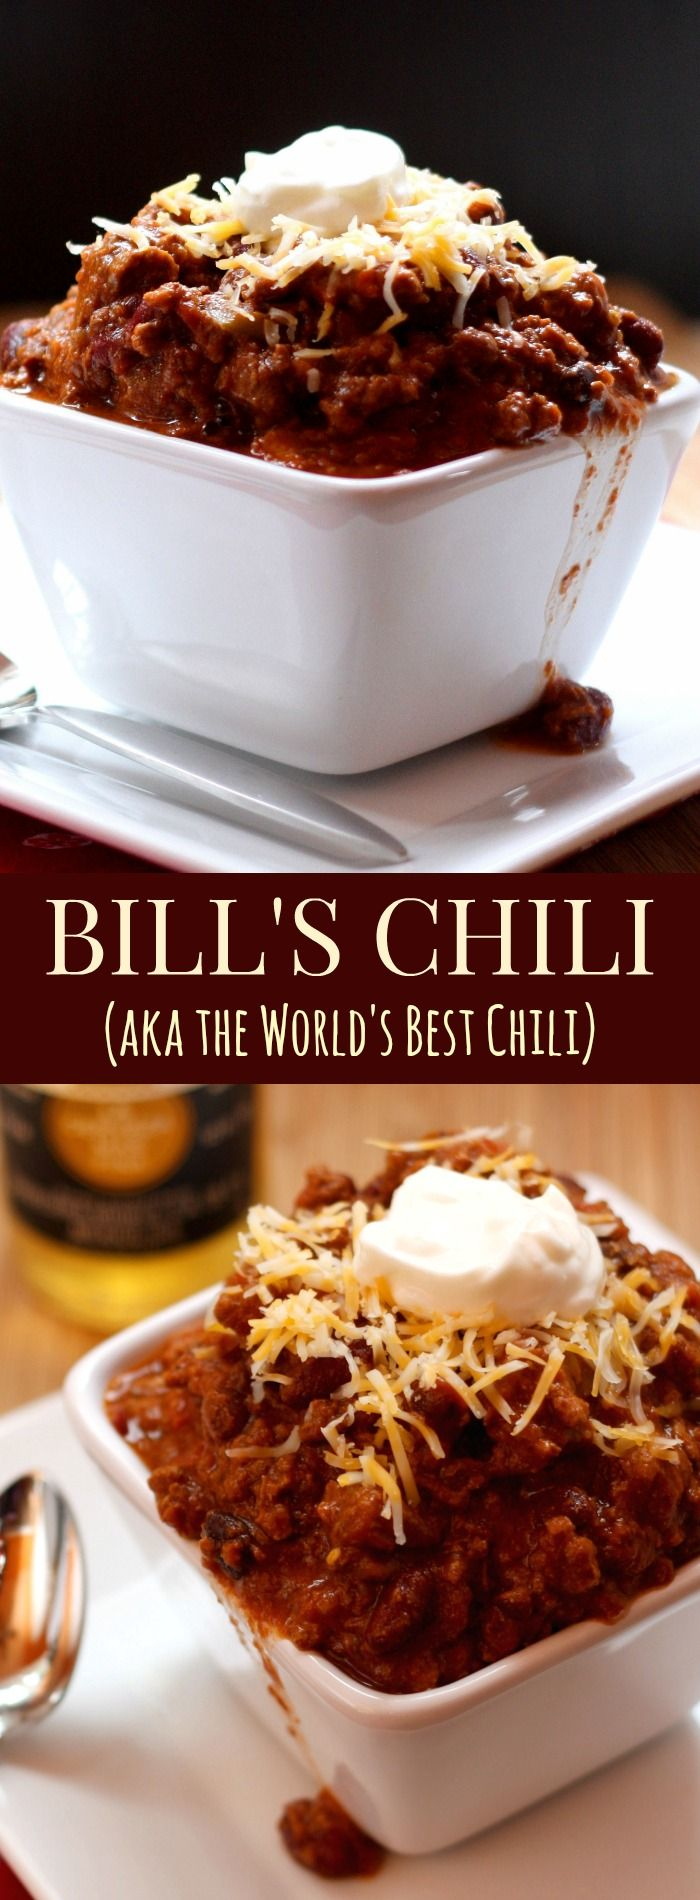 Bill's Chili is truly the World's Best Chili. I have no idea who Bill is, but he makes the BEST CHILI EVER, loaded with beef, bacon, and more.